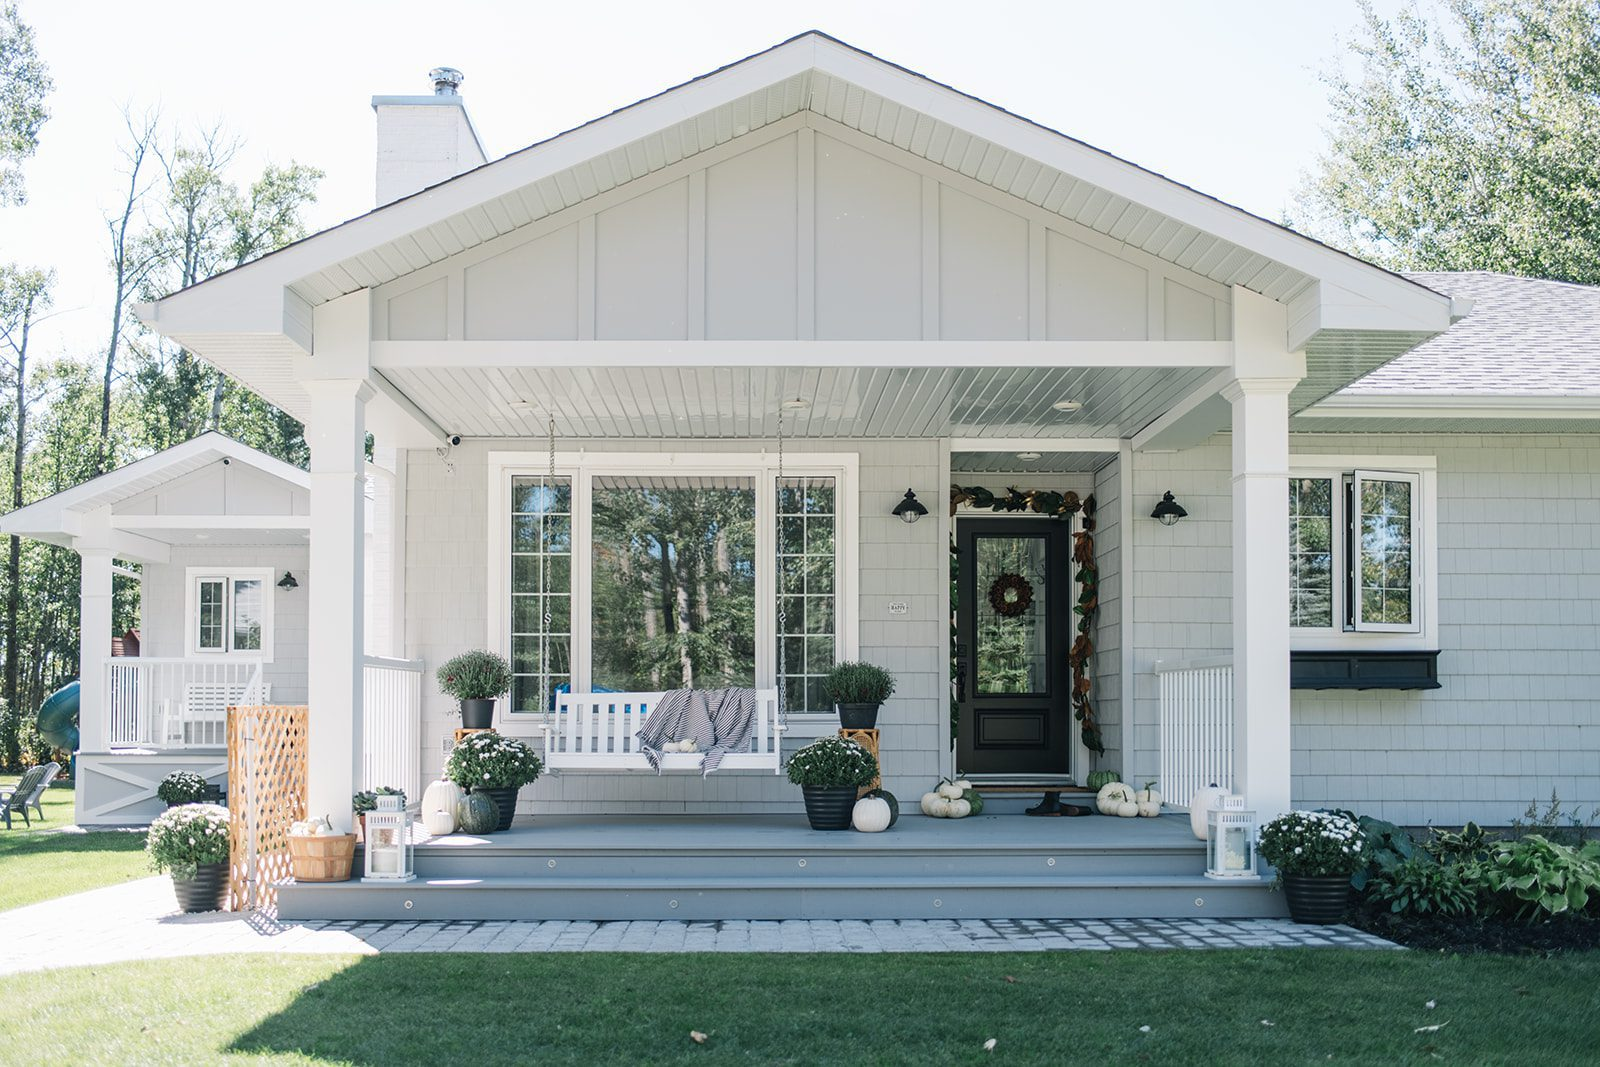 Modern country farmhouse with grey shingles and board and batten, black door and porch swing